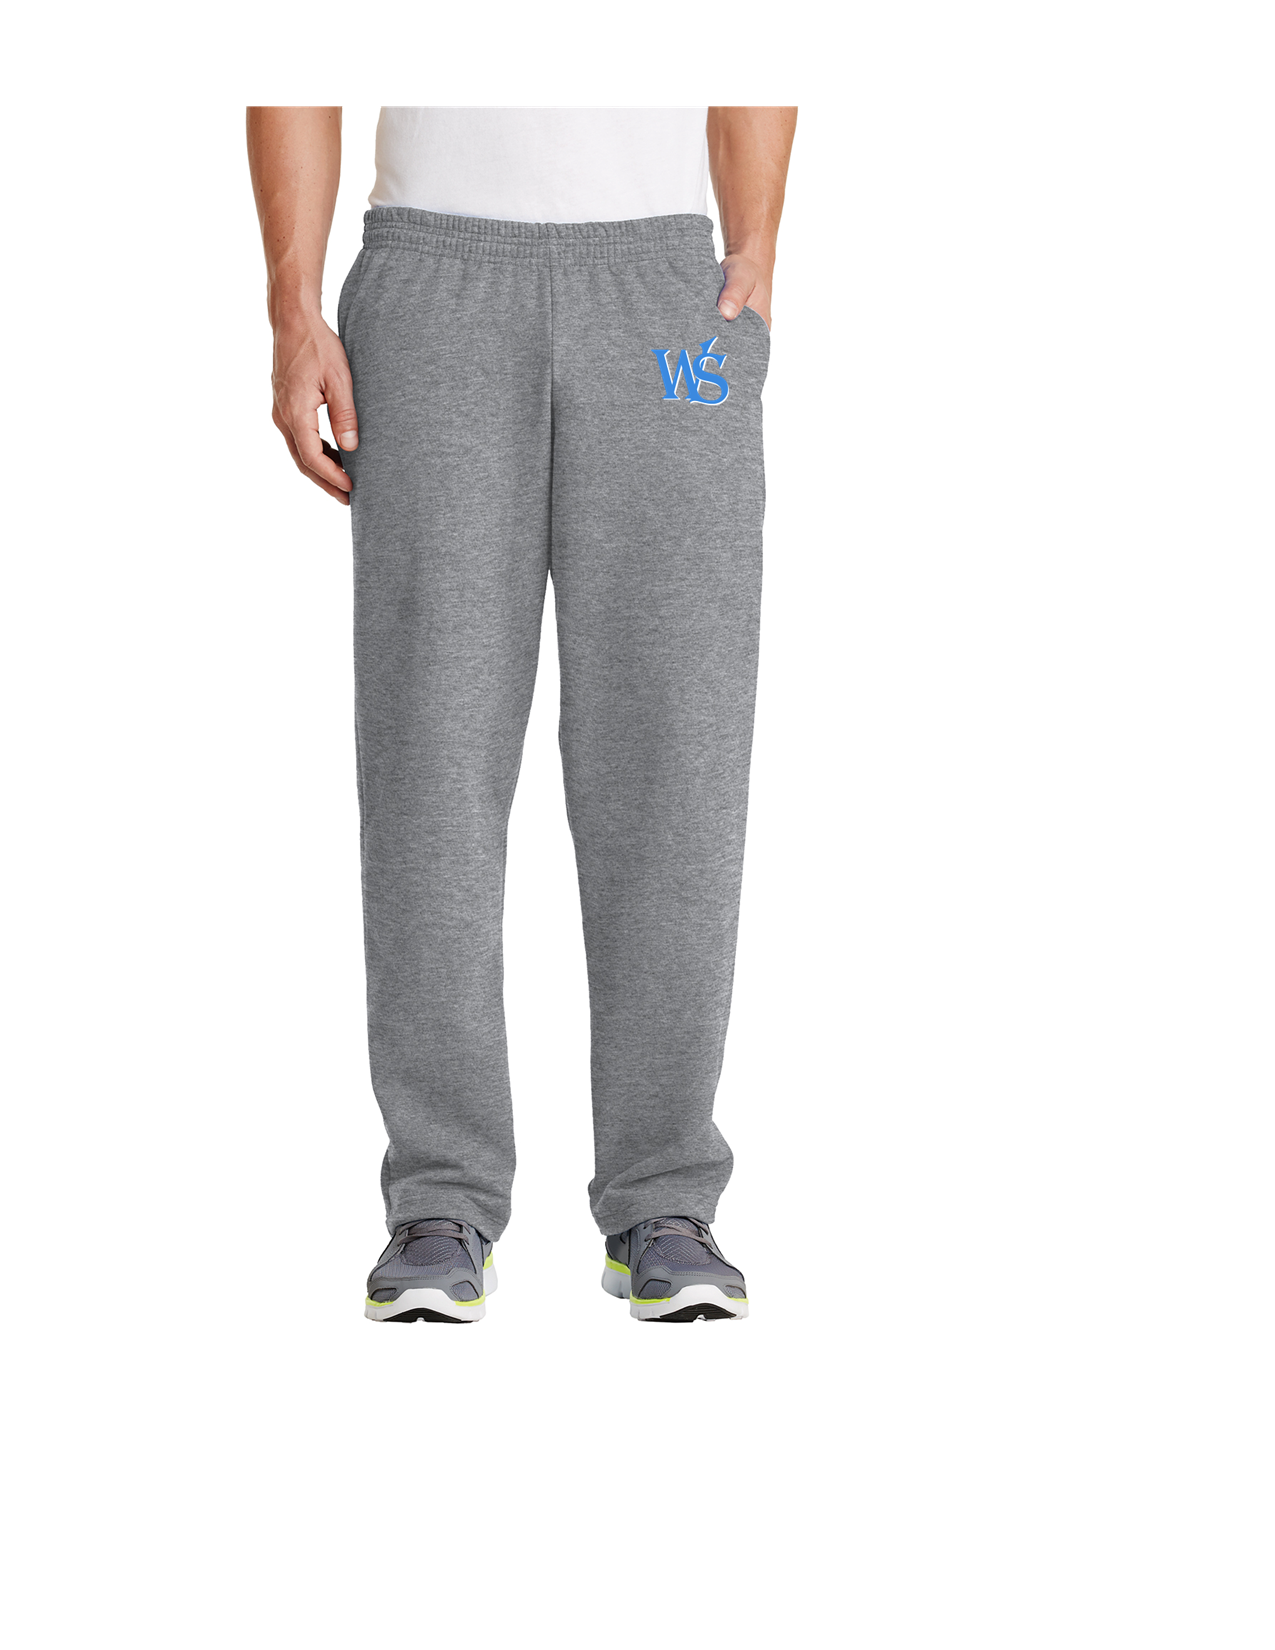 Men's Port & Company Sweatpants